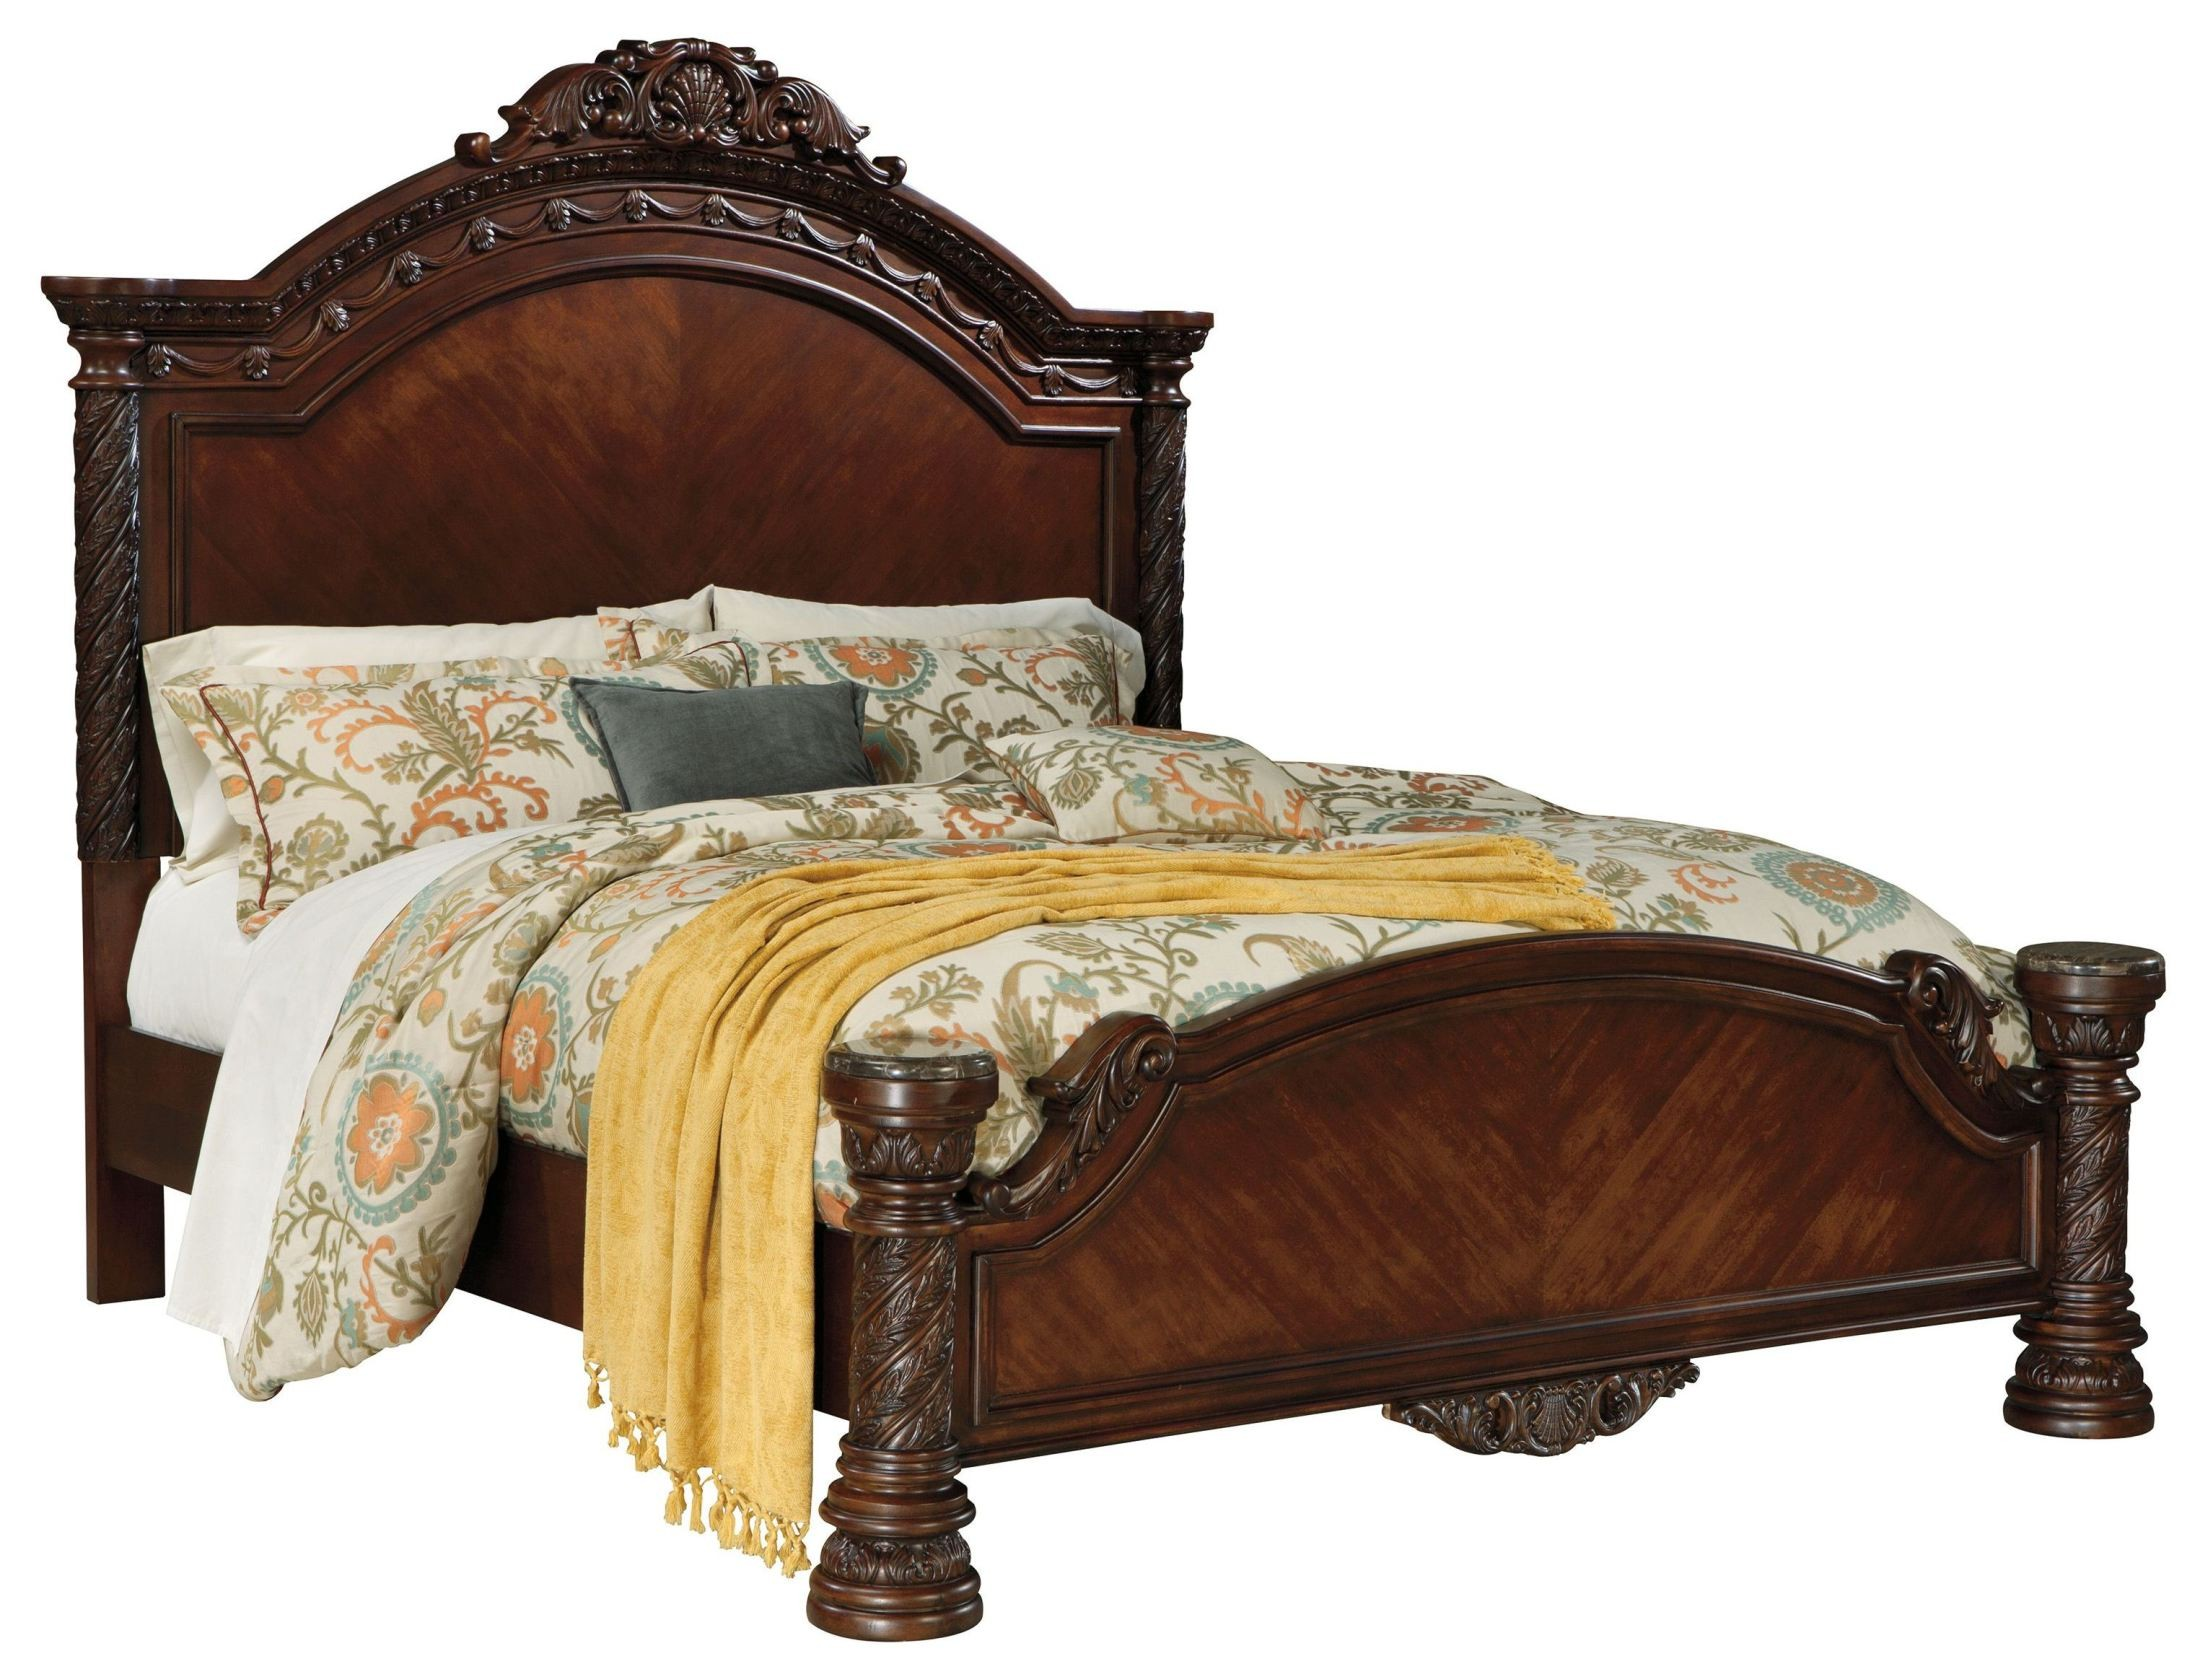 North shore cal king panel bed from ashley b553 158 256 194 coleman furniture for North shore california king canopy bedroom set